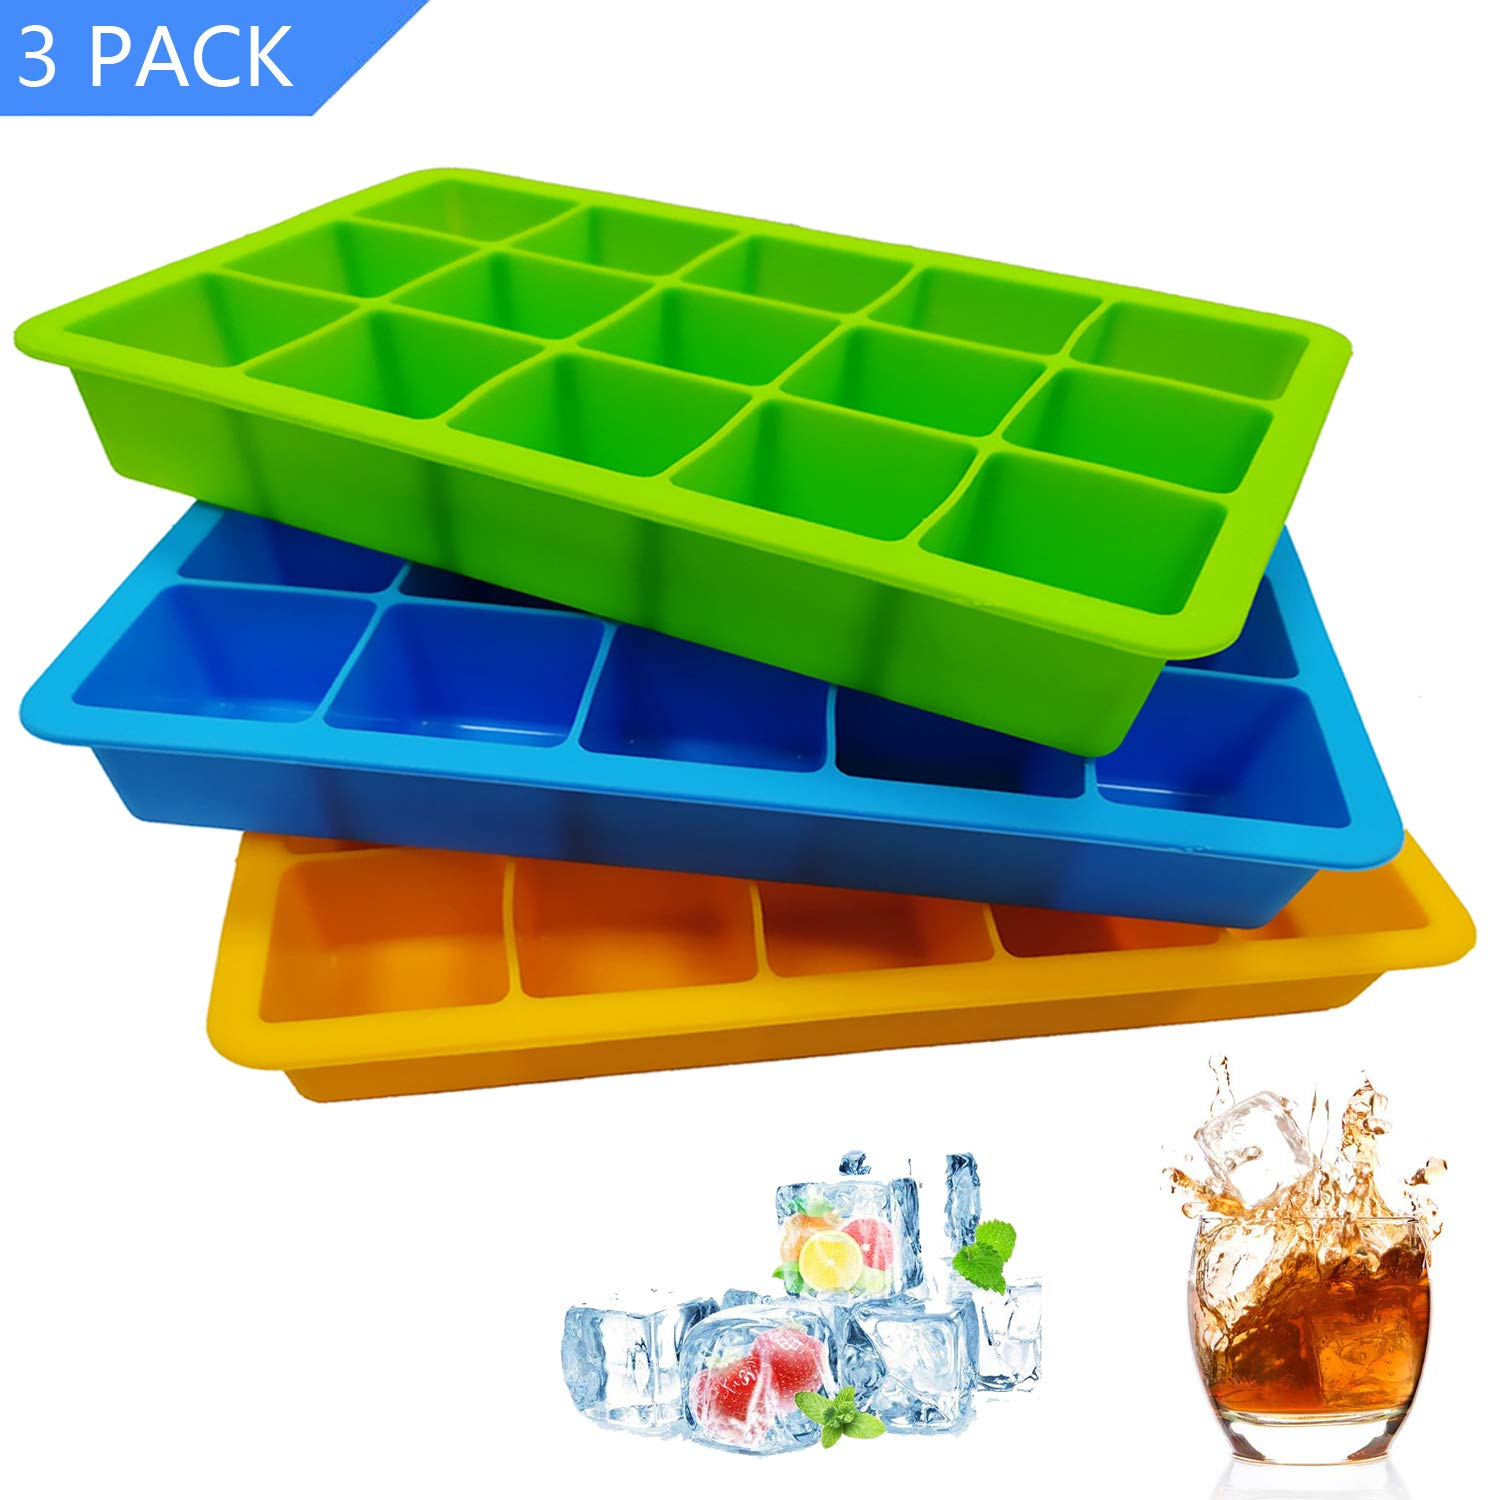 Silicone Ice Cube Trays, 3 Pack Flexible 15-Cavity Silicone Ice Cube Molds - FDA Certification, BPA Free, Stackable, Easy Release (3 colors - Orange/Blue/Green)